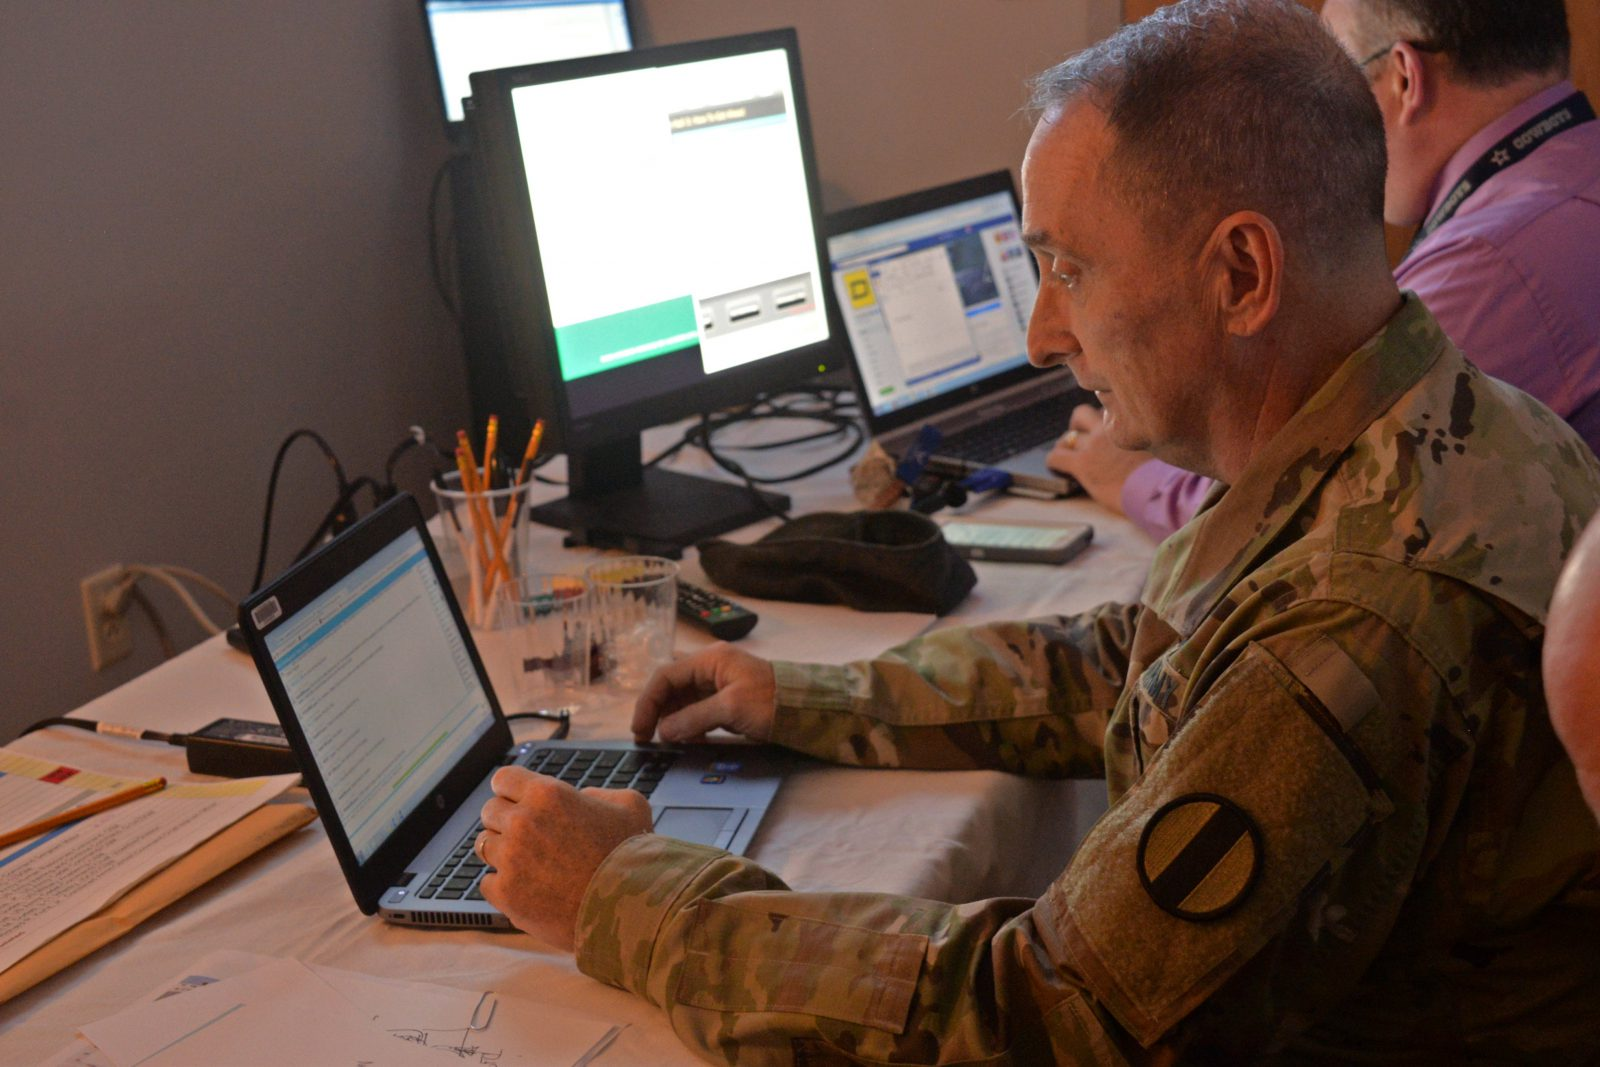 Sgt. Maj. David Davenport invited Soldiers to engage with panelists via Twitter